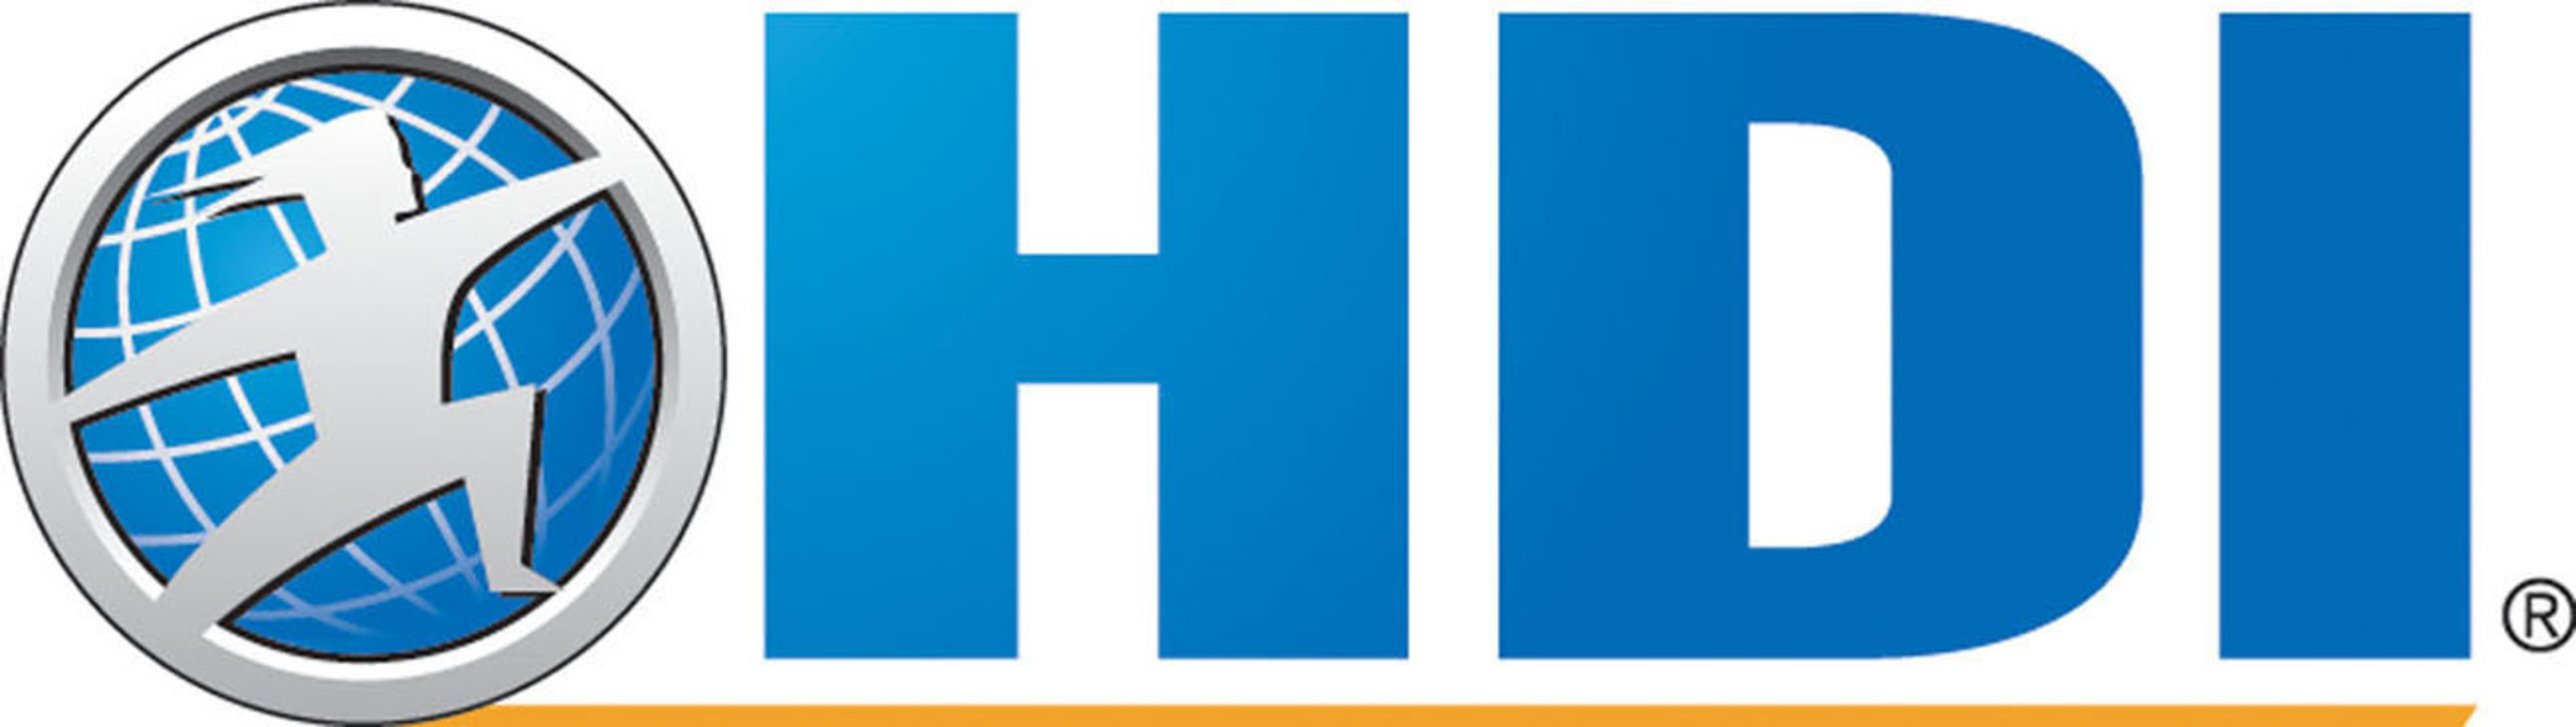 HDI will take place March 24-27, 2015 at the Mandalay Bay Convention Center in Las Vegas.